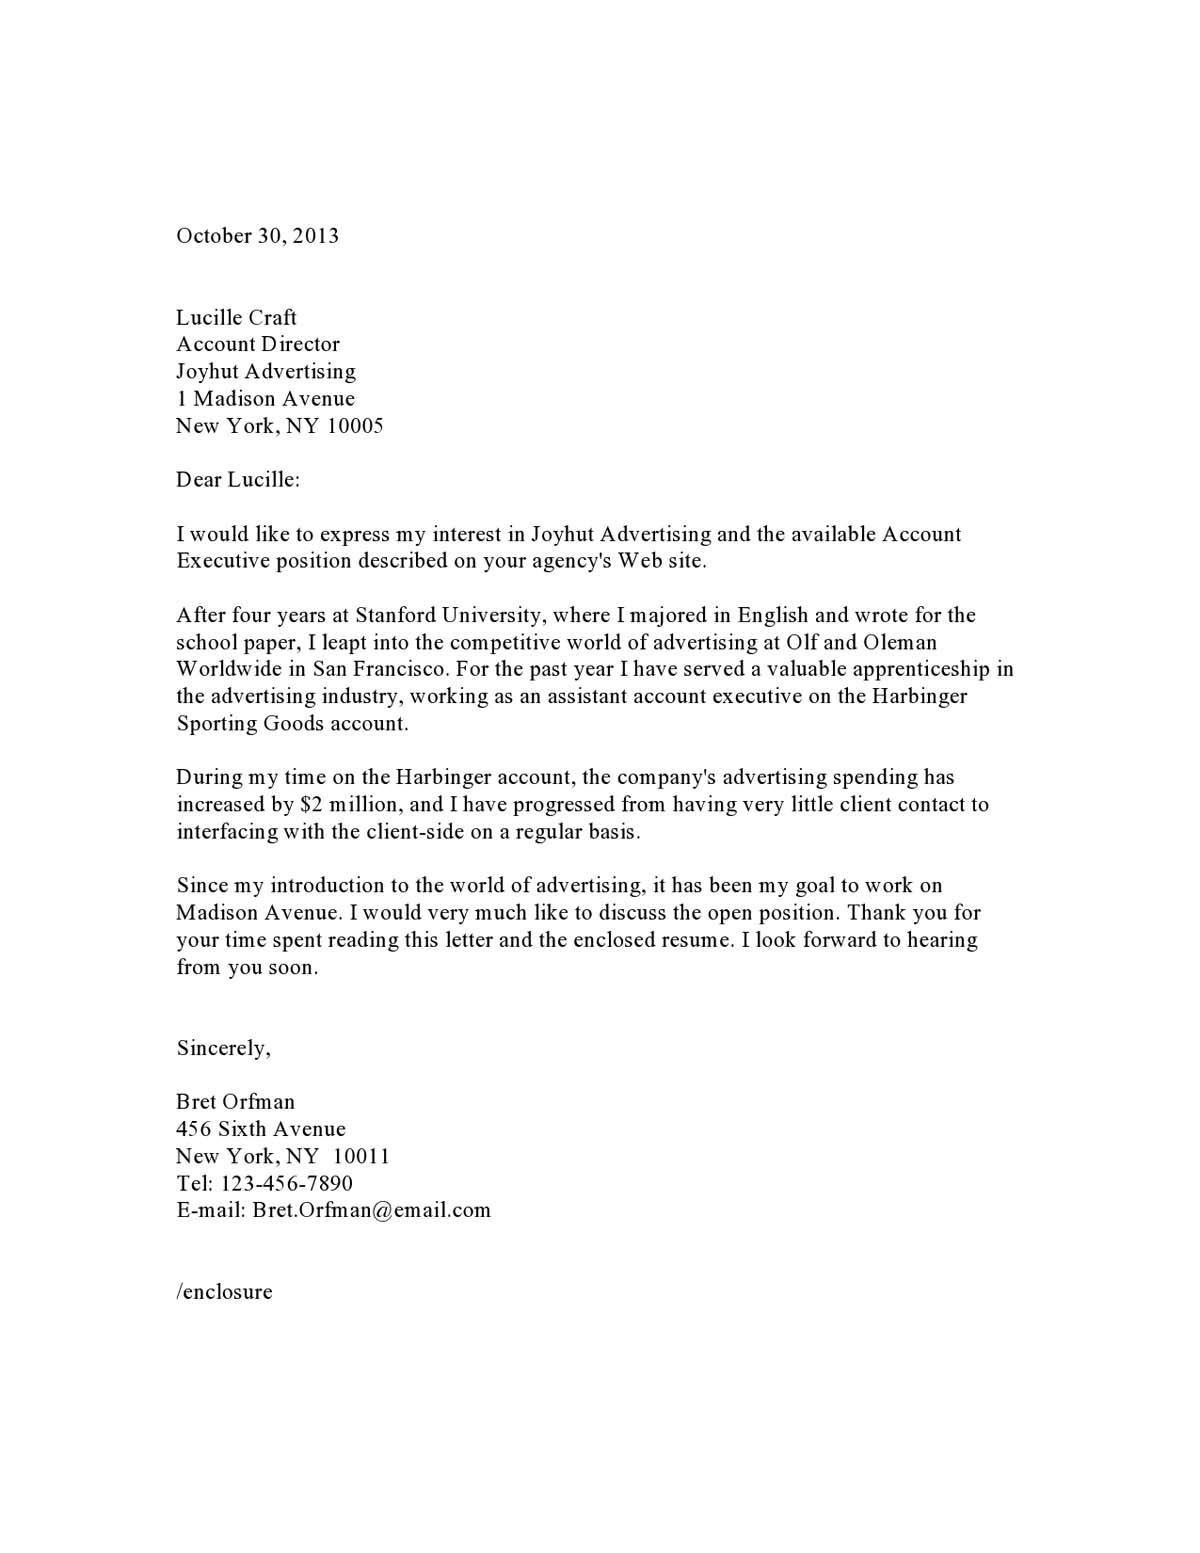 Samples Of Cover Letter  Cover Letter Samples Templates Examples Vault